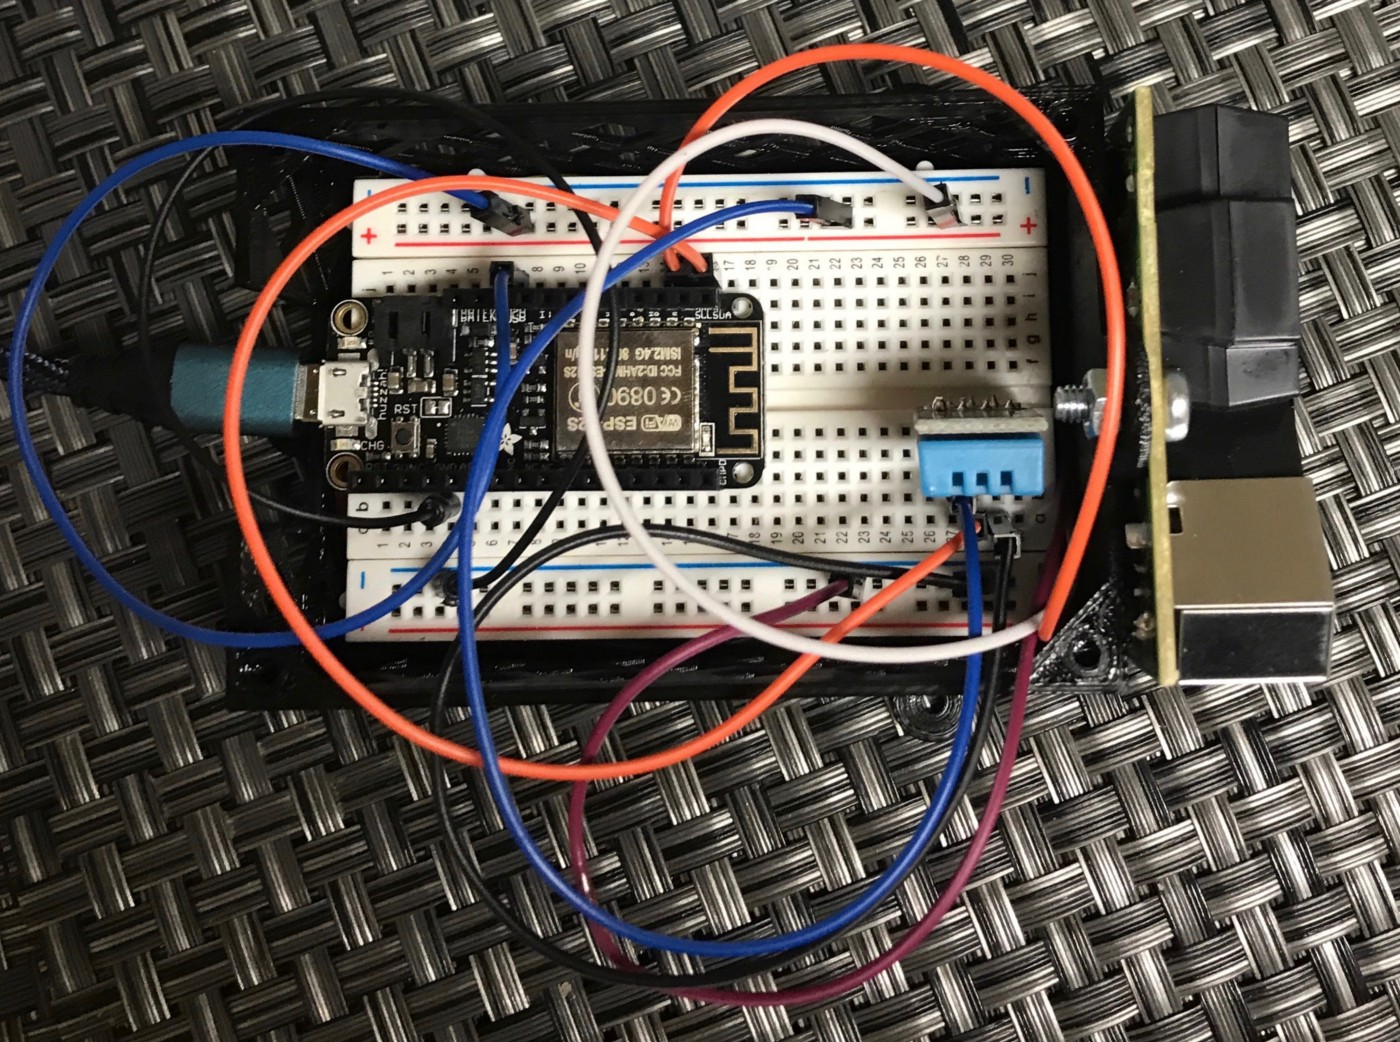 Weekend DIY? Low-Cost Air Quality Monitoring for All